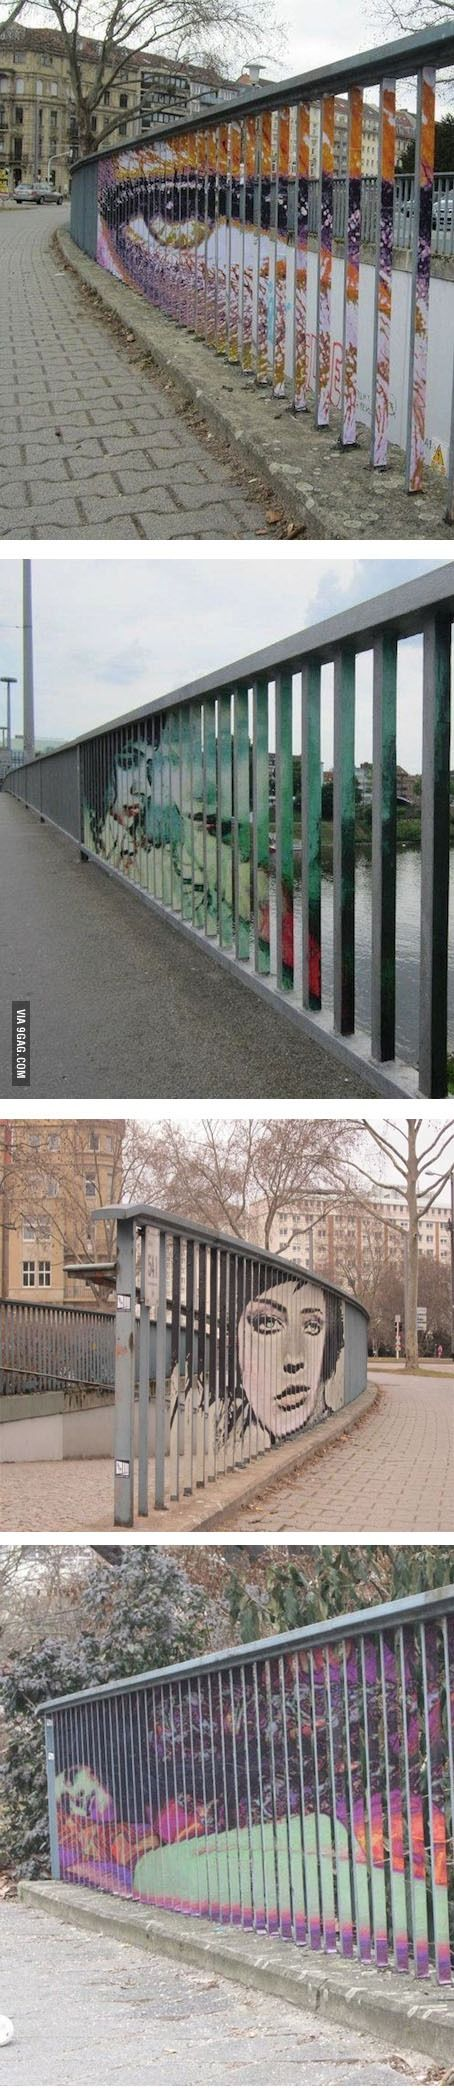 hidden street art on the side of railings only viewable from certain angles